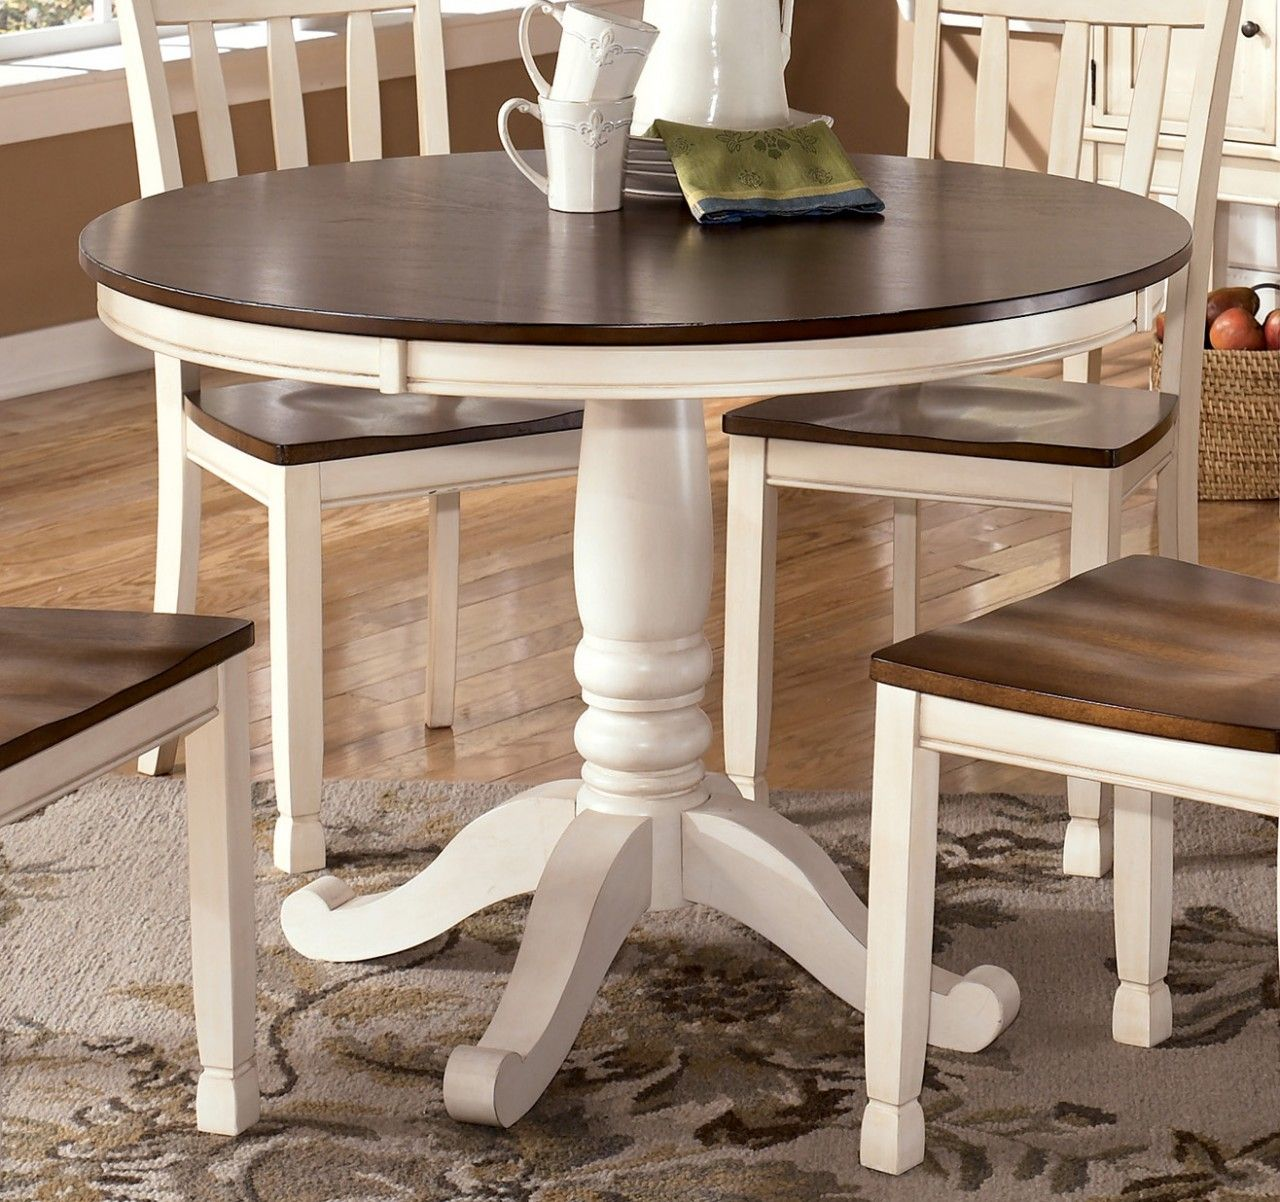 Pedestal Round Kitchen Tables In Small Kitchen Dining Area With ...